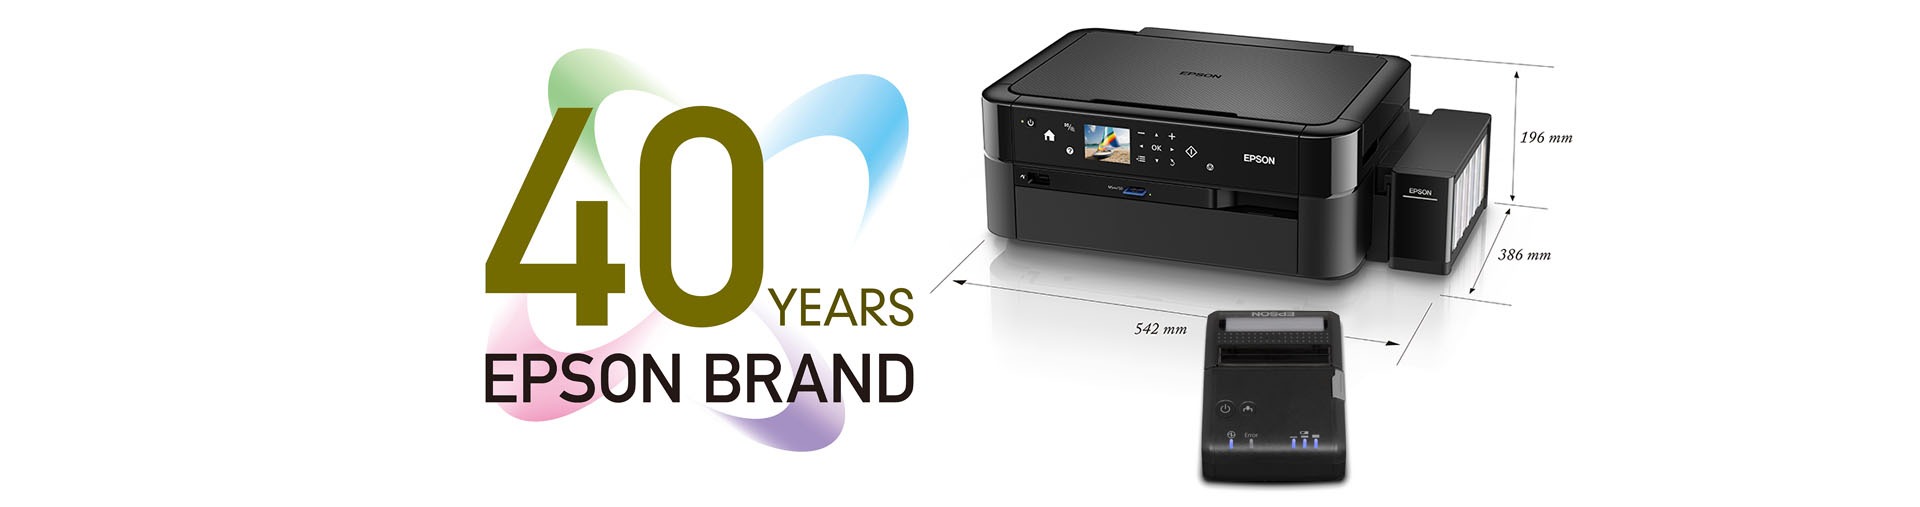 eed4ad90 Epson secures no. 1 spot in 4 categories, marks 40th year